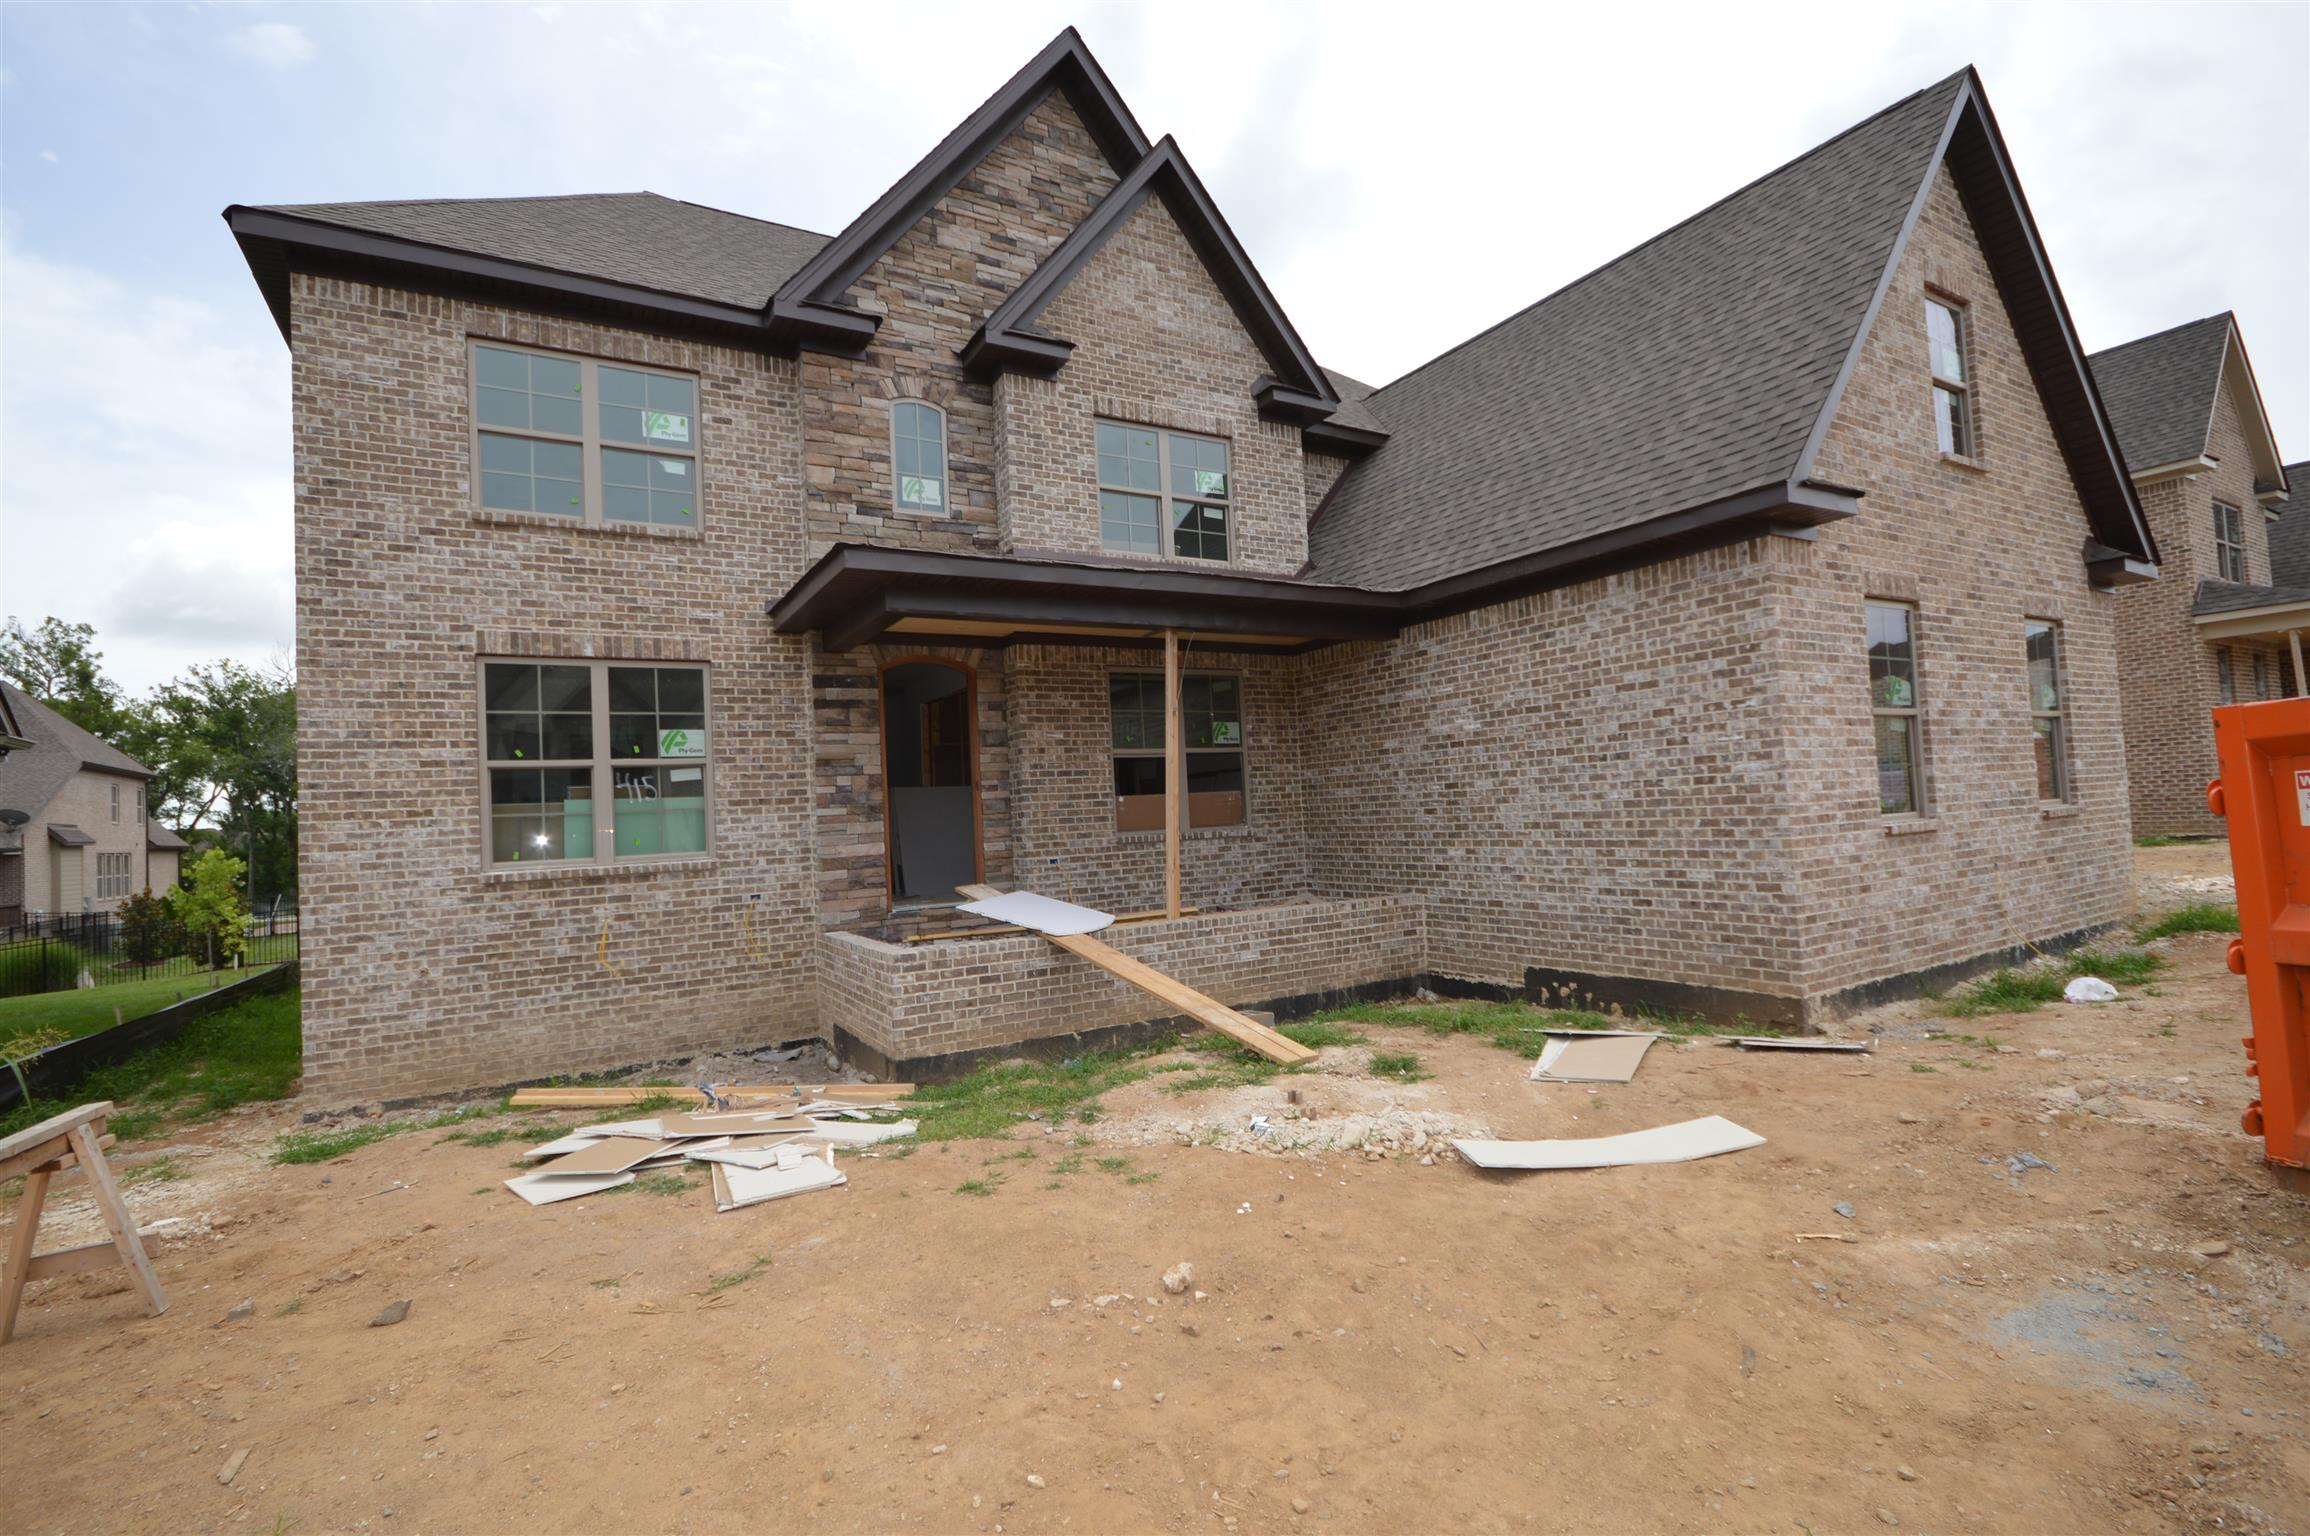 1022 Alpaca Dr. (415) 37174 - One of Spring Hill Homes for Sale